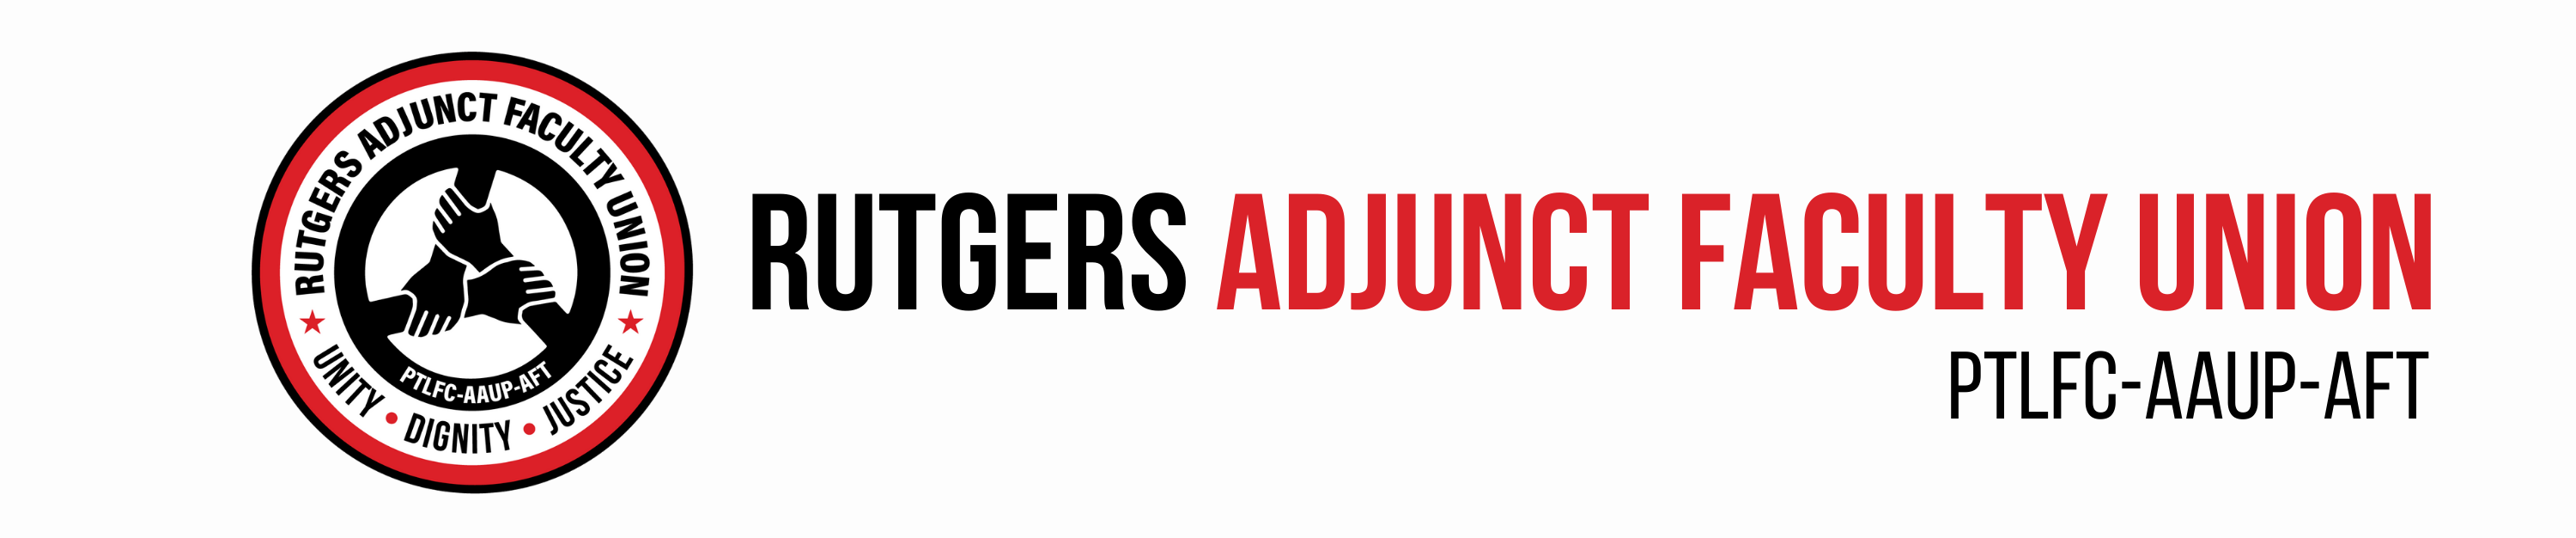 Rutgers Adjunct Faculty Union